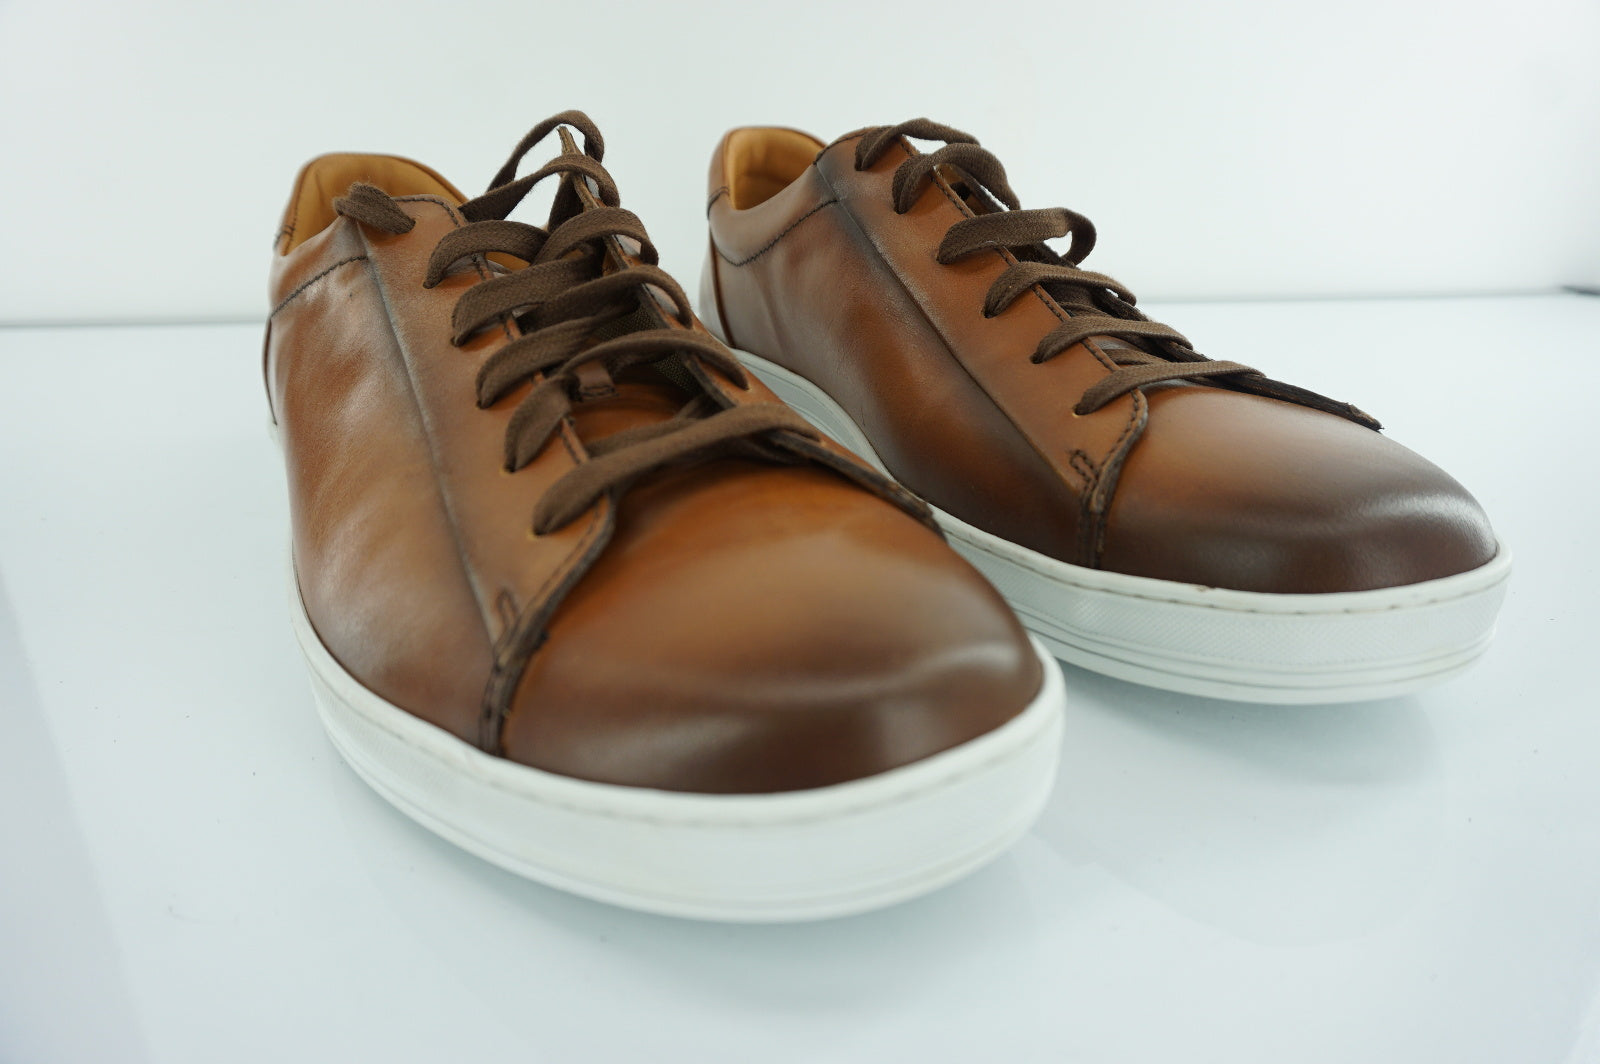 To Boot New York Brown Leather Ranger Mens Low Top Sneakers Size 13 NIB $375